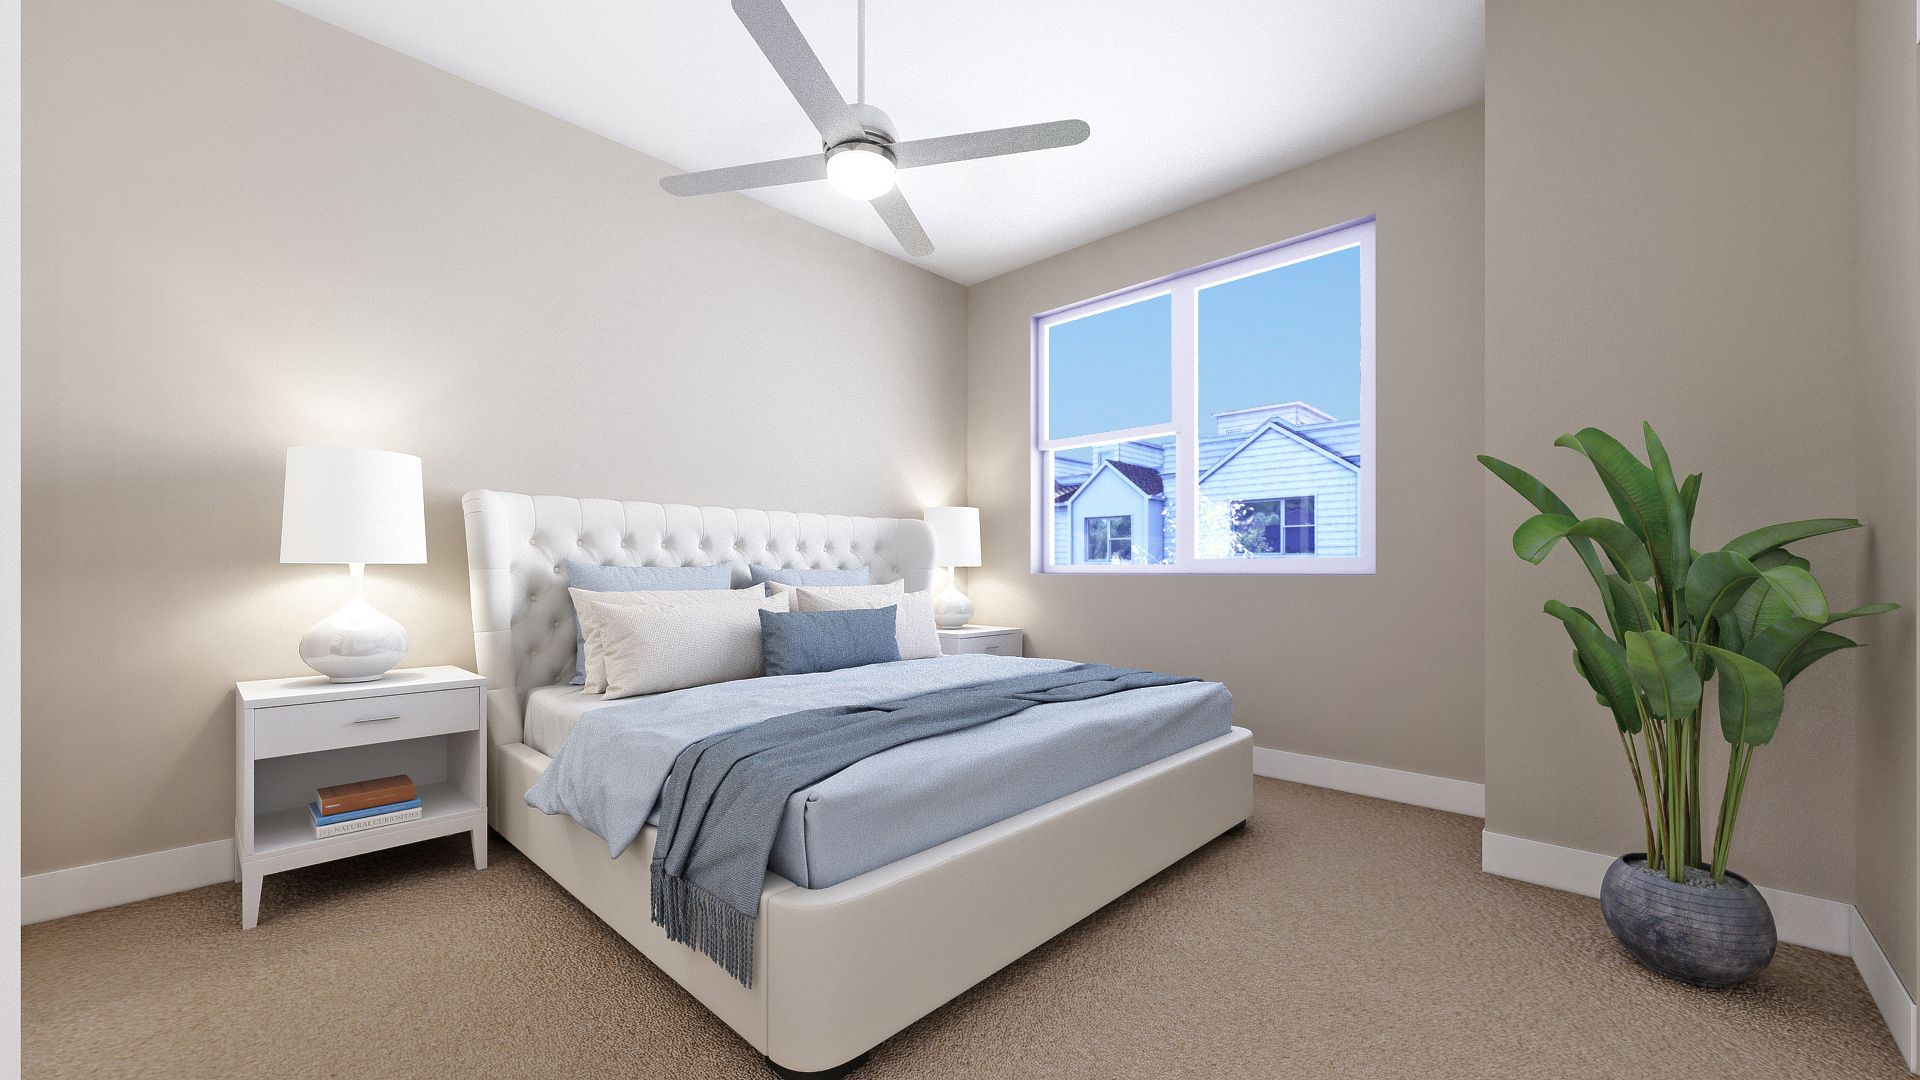 Bedroom featured in the A Plan By Koelbel Urban Homes in Denver, CO